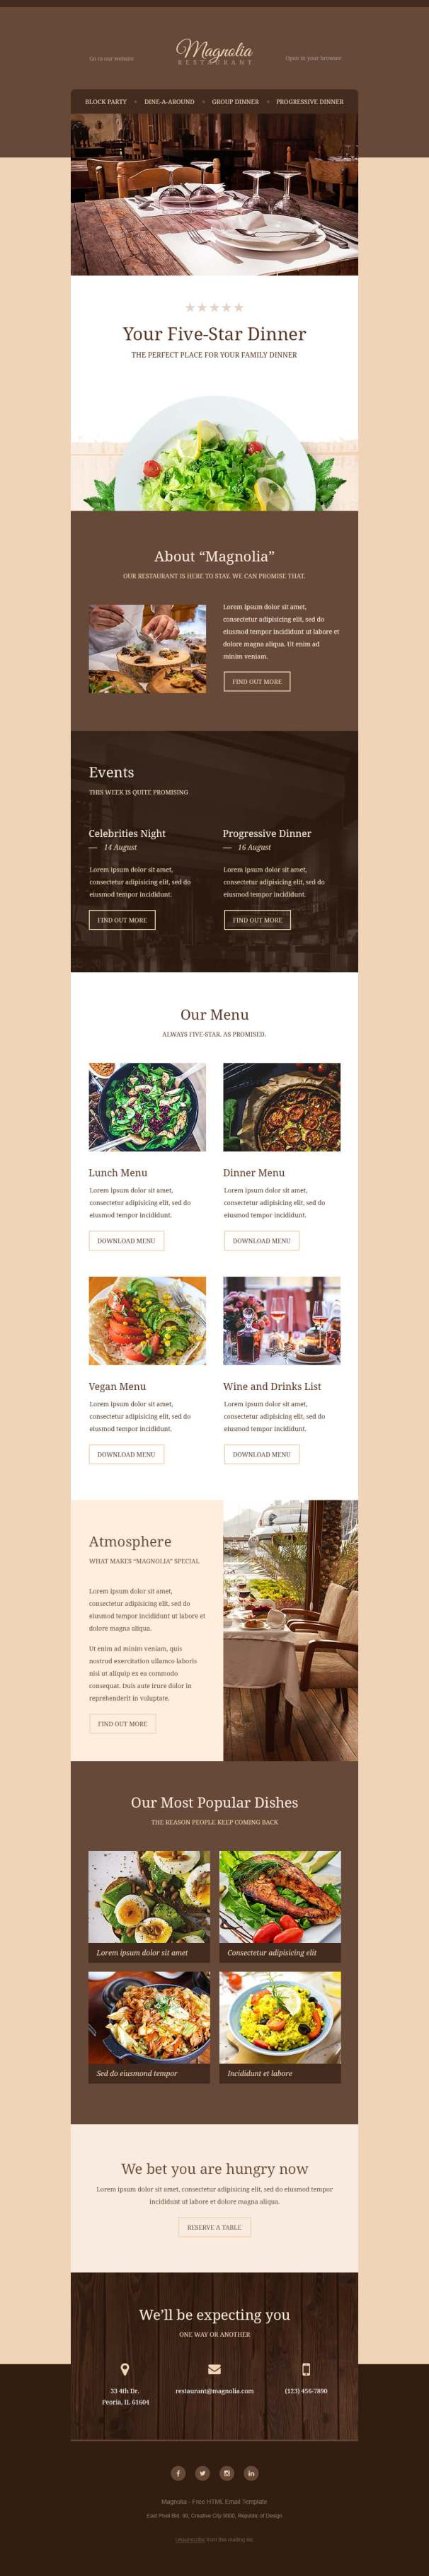 MB_Freemium-Templates_Food-and-Restaurants_1-1